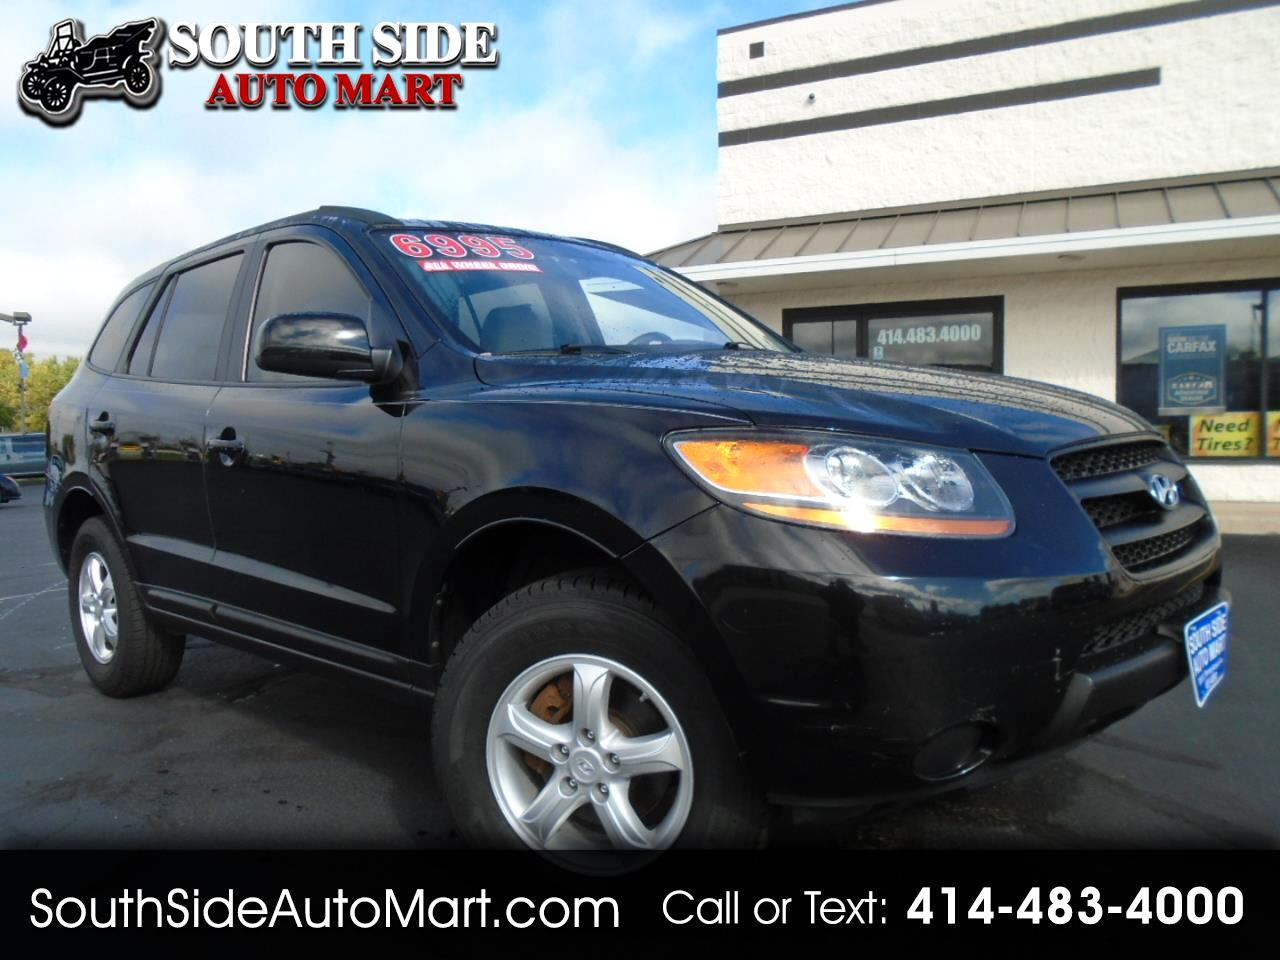 used cars cudahy wi used cars trucks wi southside auto mart used cars cudahy wi used cars